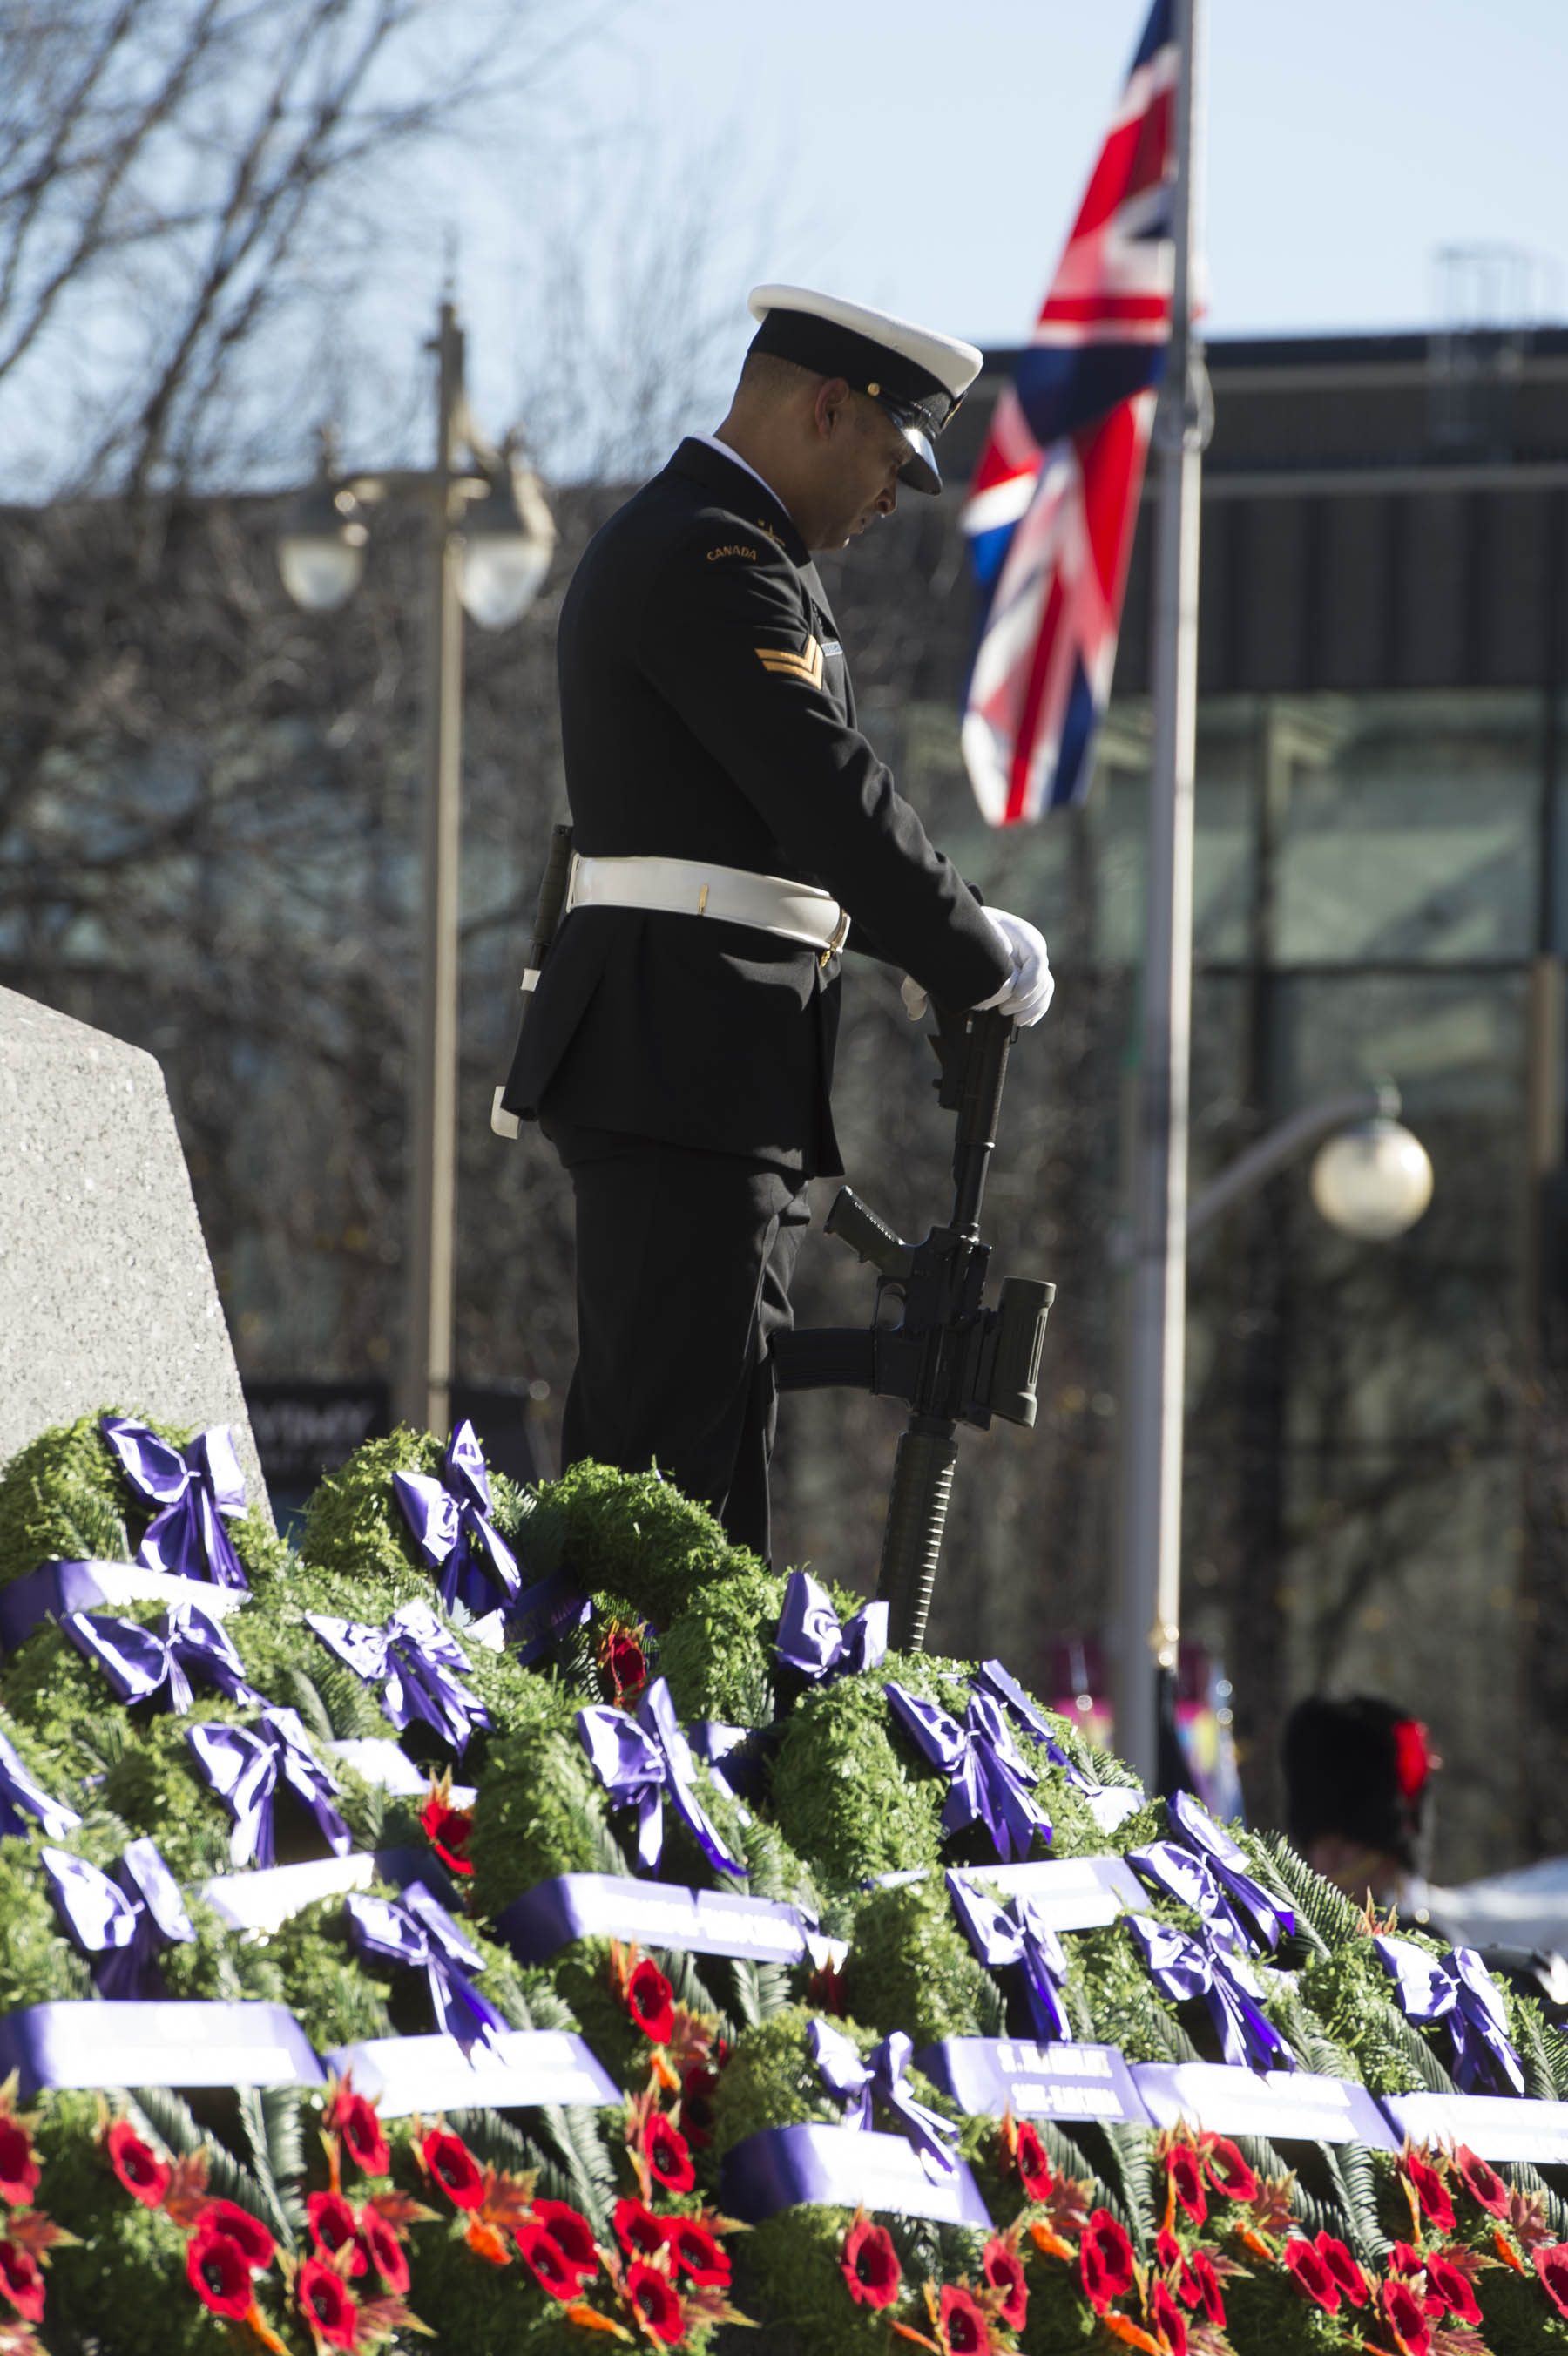 Hundreds of wreaths were laid at the National War Memorial.